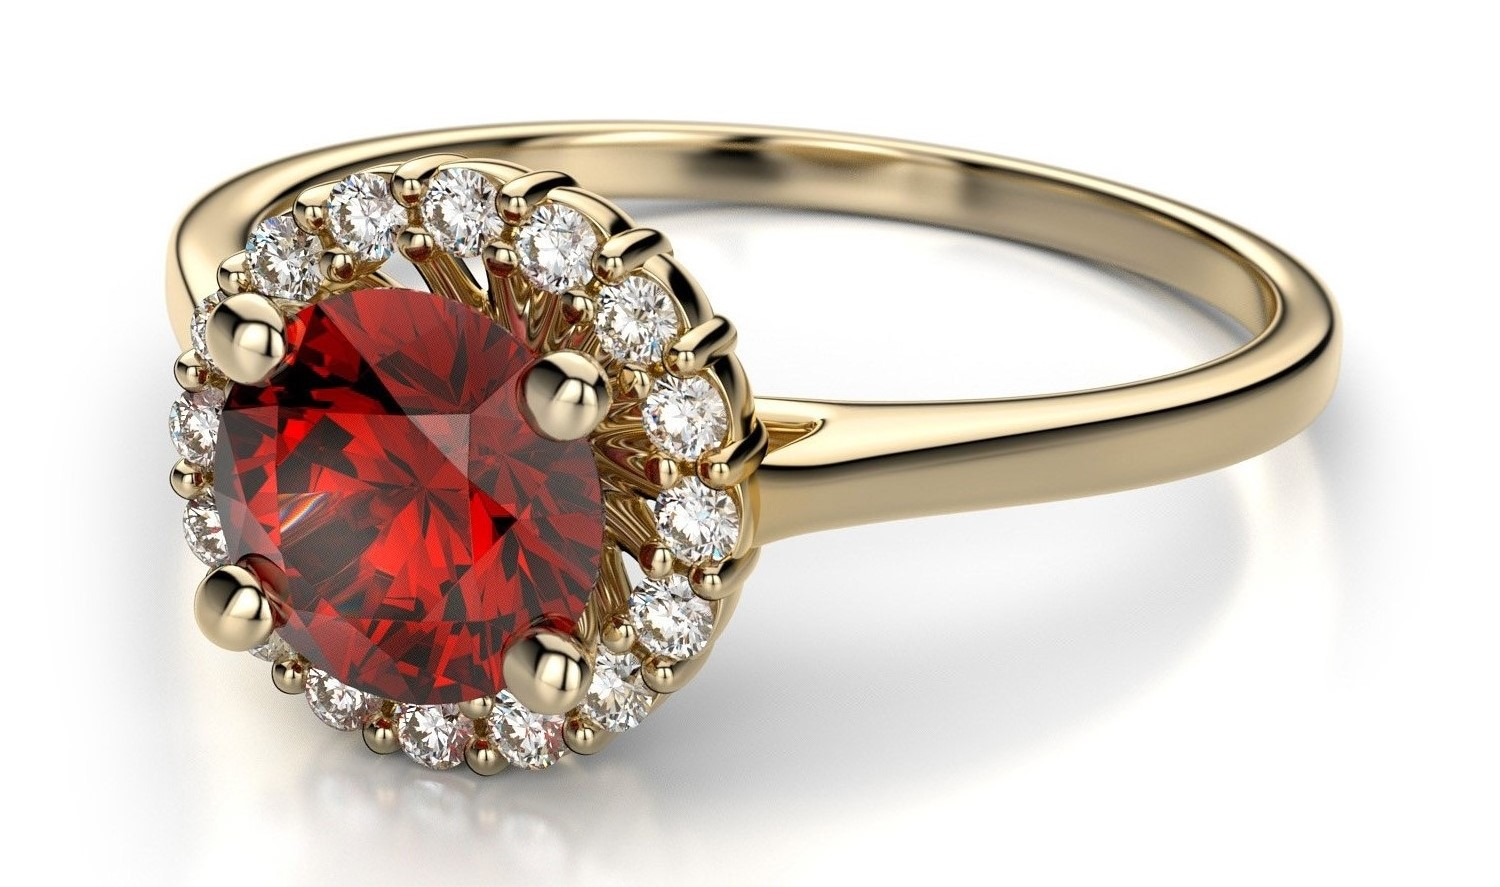 zimperlich-nice-on-looking-that-is-ruby-diamond-ring-diamond-ring-and_ruby-engagement-rings-vintage-ruby-engagement-rings-tiffany